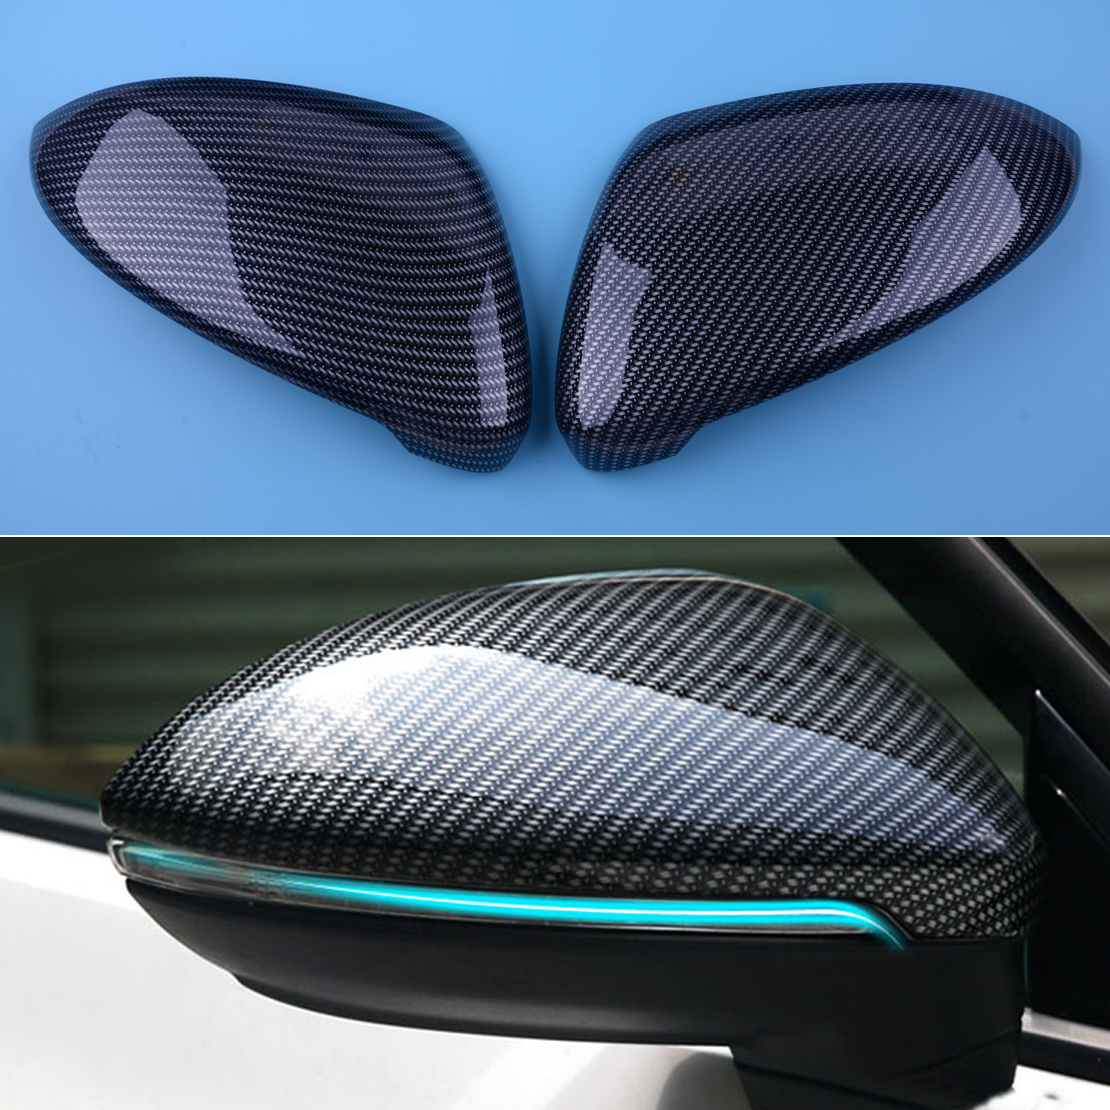 CITALL 2Pcs Black Carbon Fiber Style ABS Side Rearview Mirror Cover Trim fit for VW Golf 7 MK7 2014 2015 2016 2017 2018 2pcs carbon fiber side mirror caps covers set for volkswagen golf mk7 20014 2015